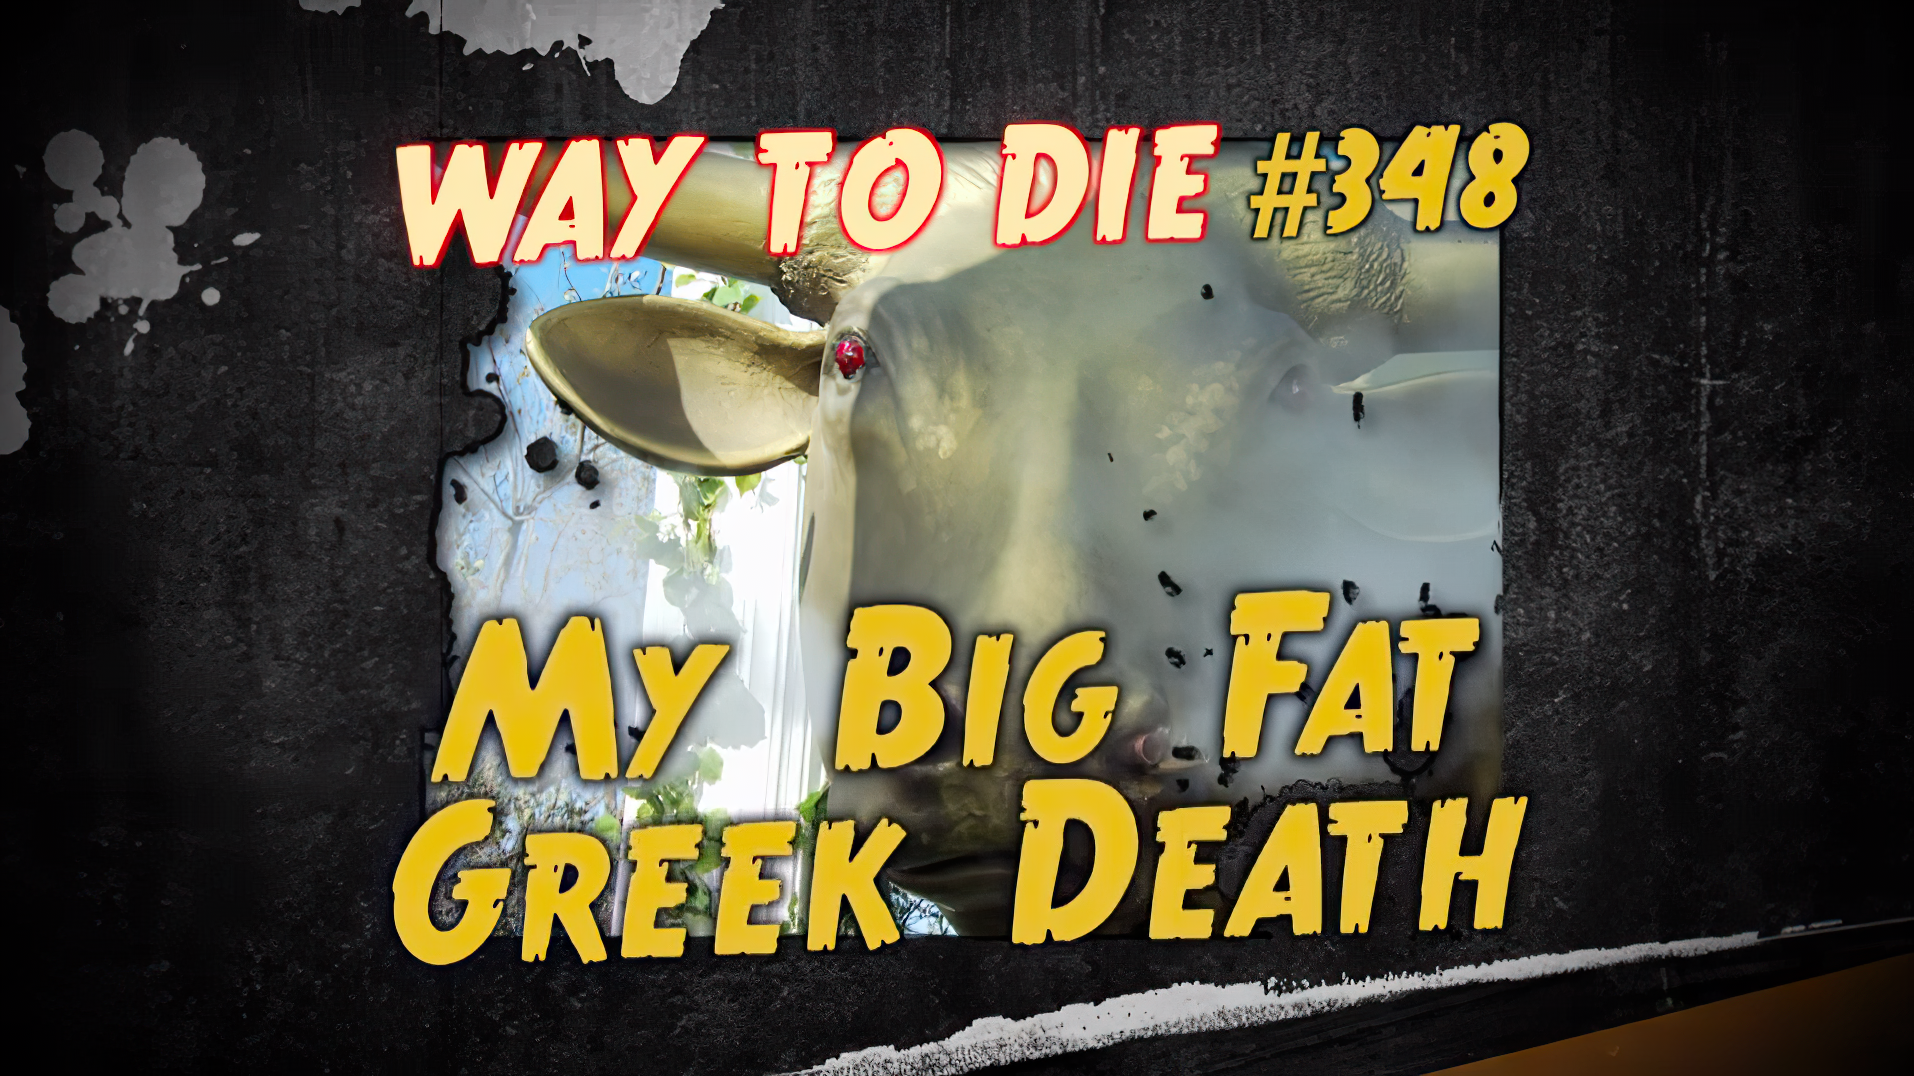 My Big Fat Greek Death